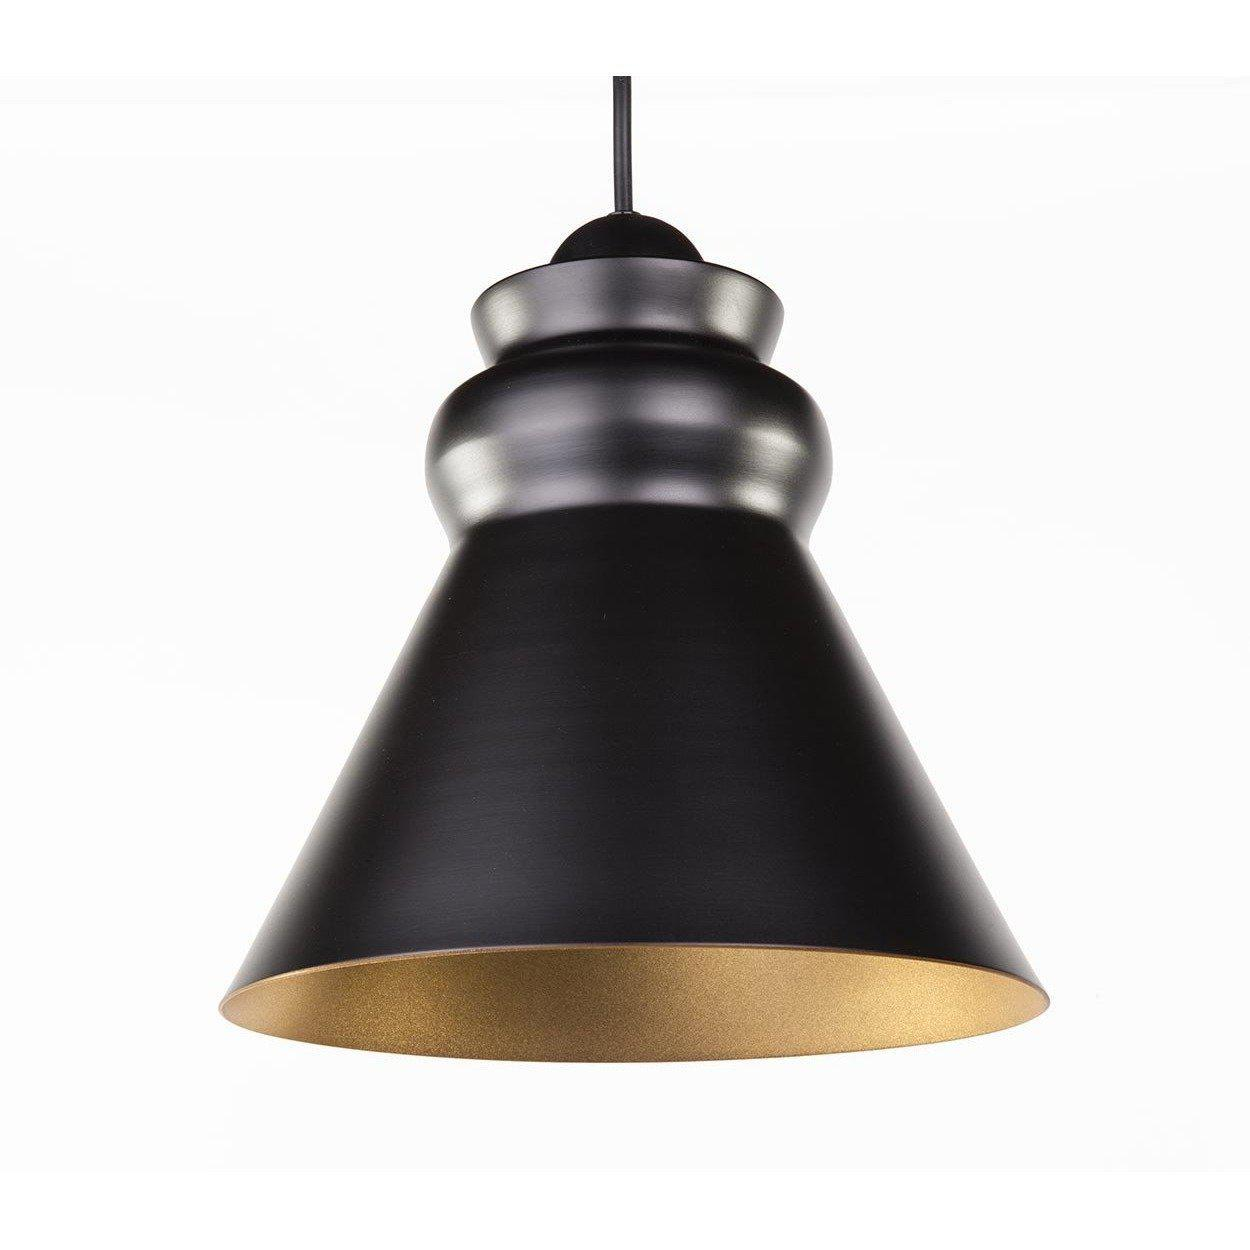 [LM3429PBLK] The boden pendant Sale